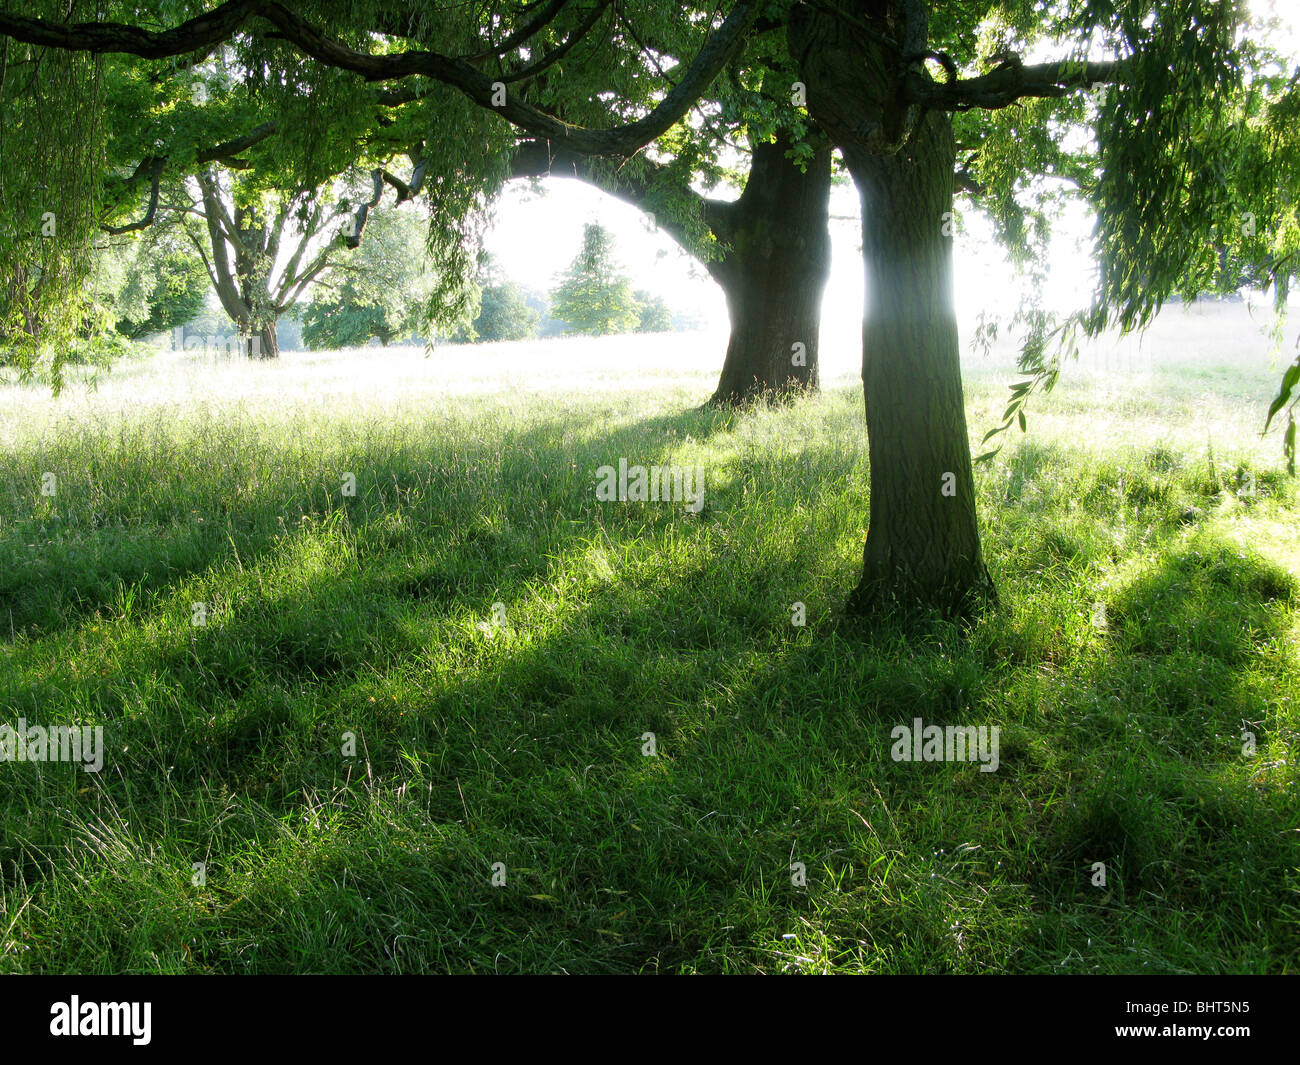 Sun shining through trees in summertime - Stock Image